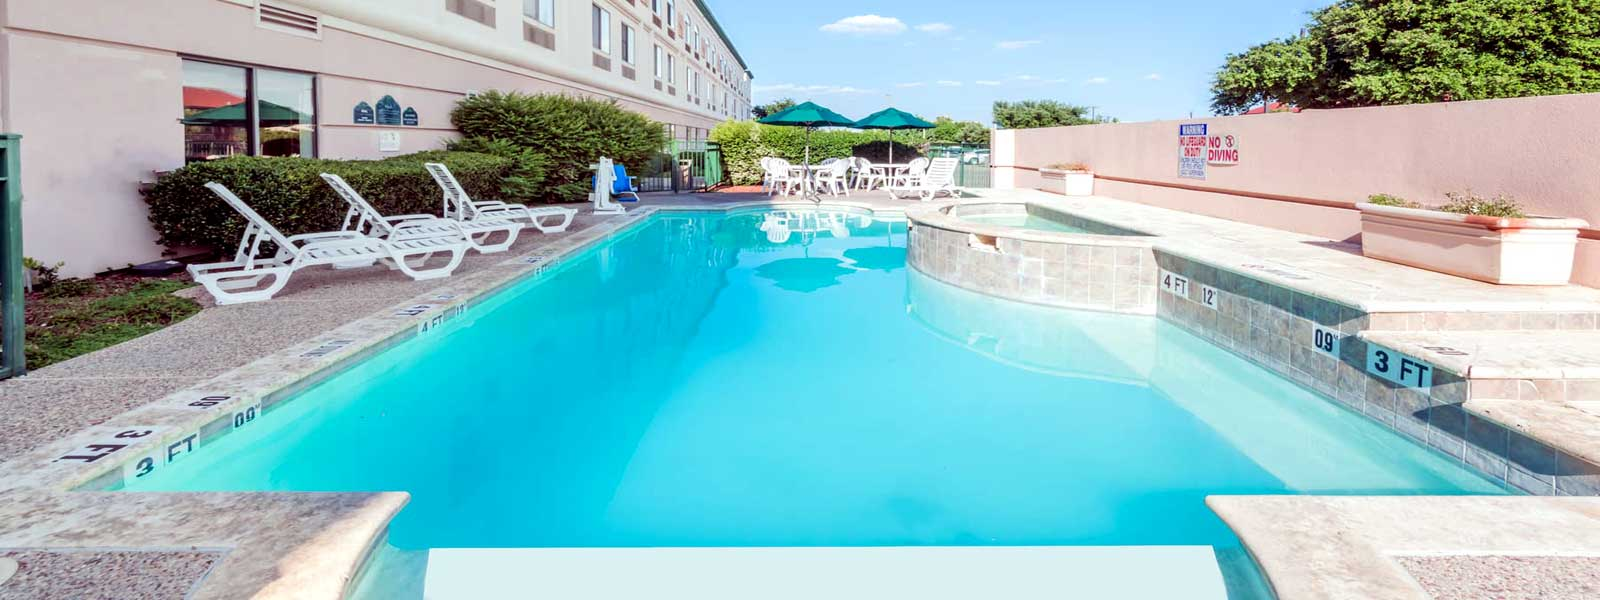 Motels in Irving Budget Discount 3 Star Rating